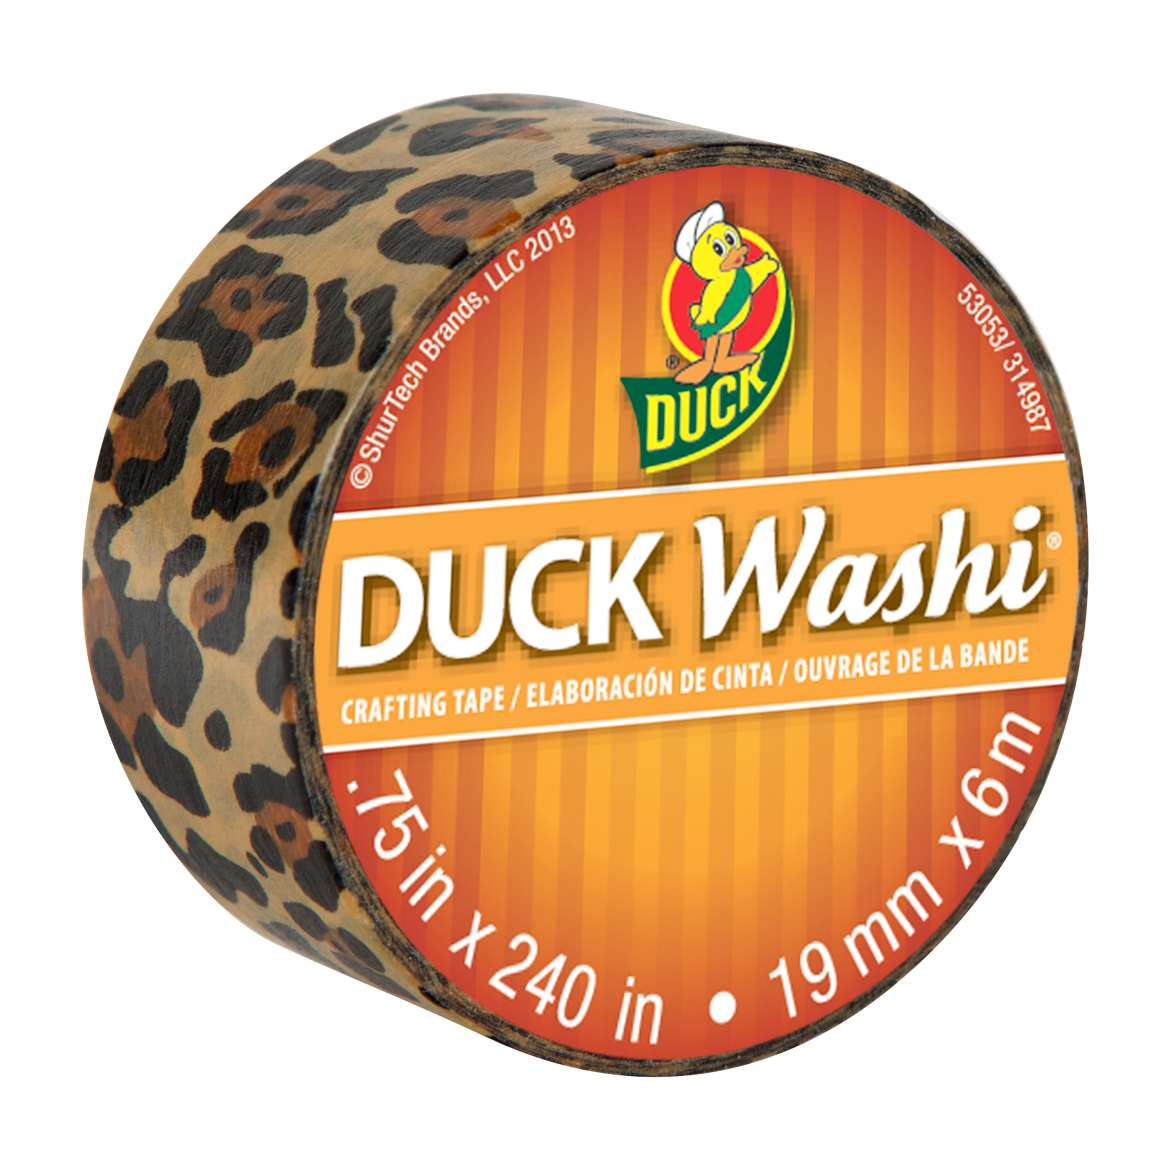 Duck Washi® Crafting Tape - Wild Leopard, .75 in. x 240 in. Image